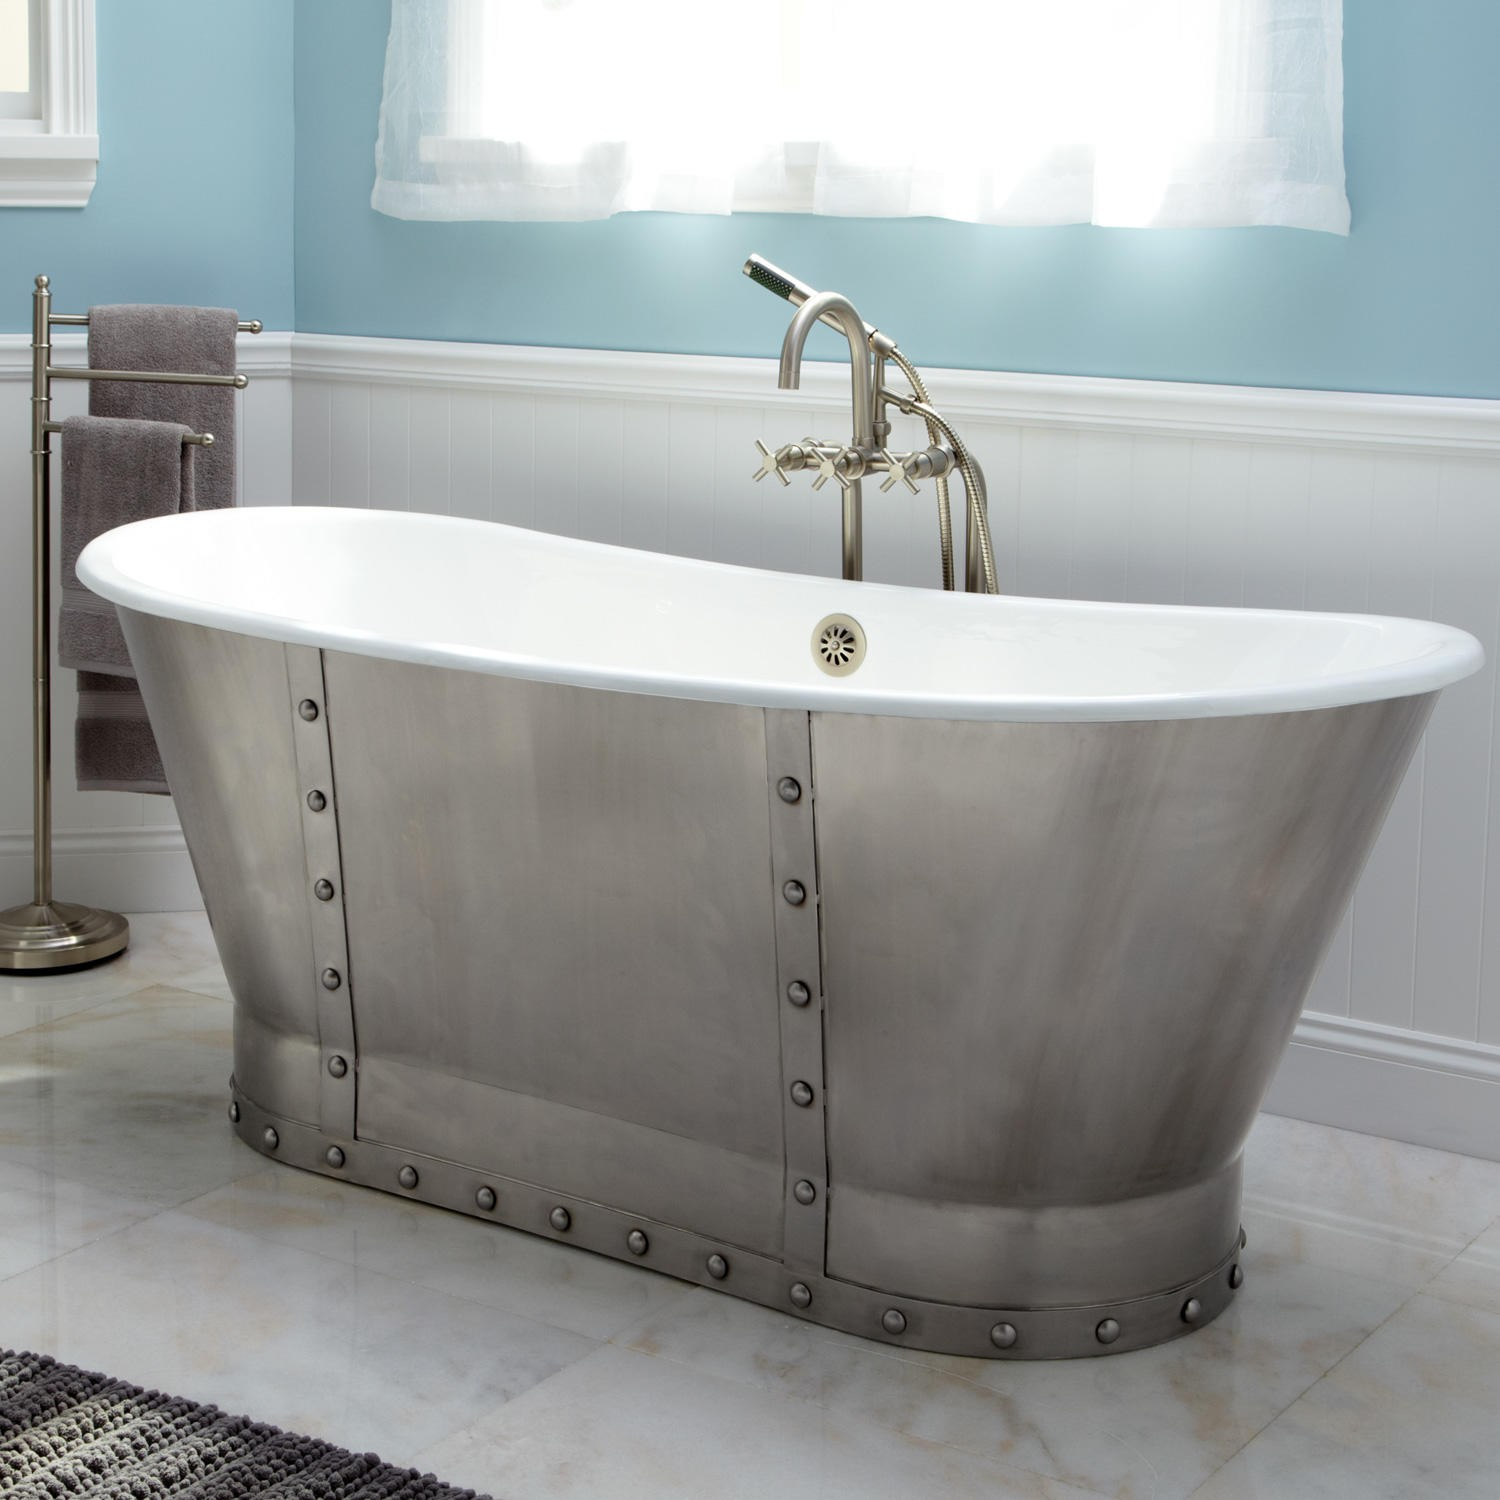 Porcelain Steel Bathtubs Bathtub Ideas For Dimensions 1500 X